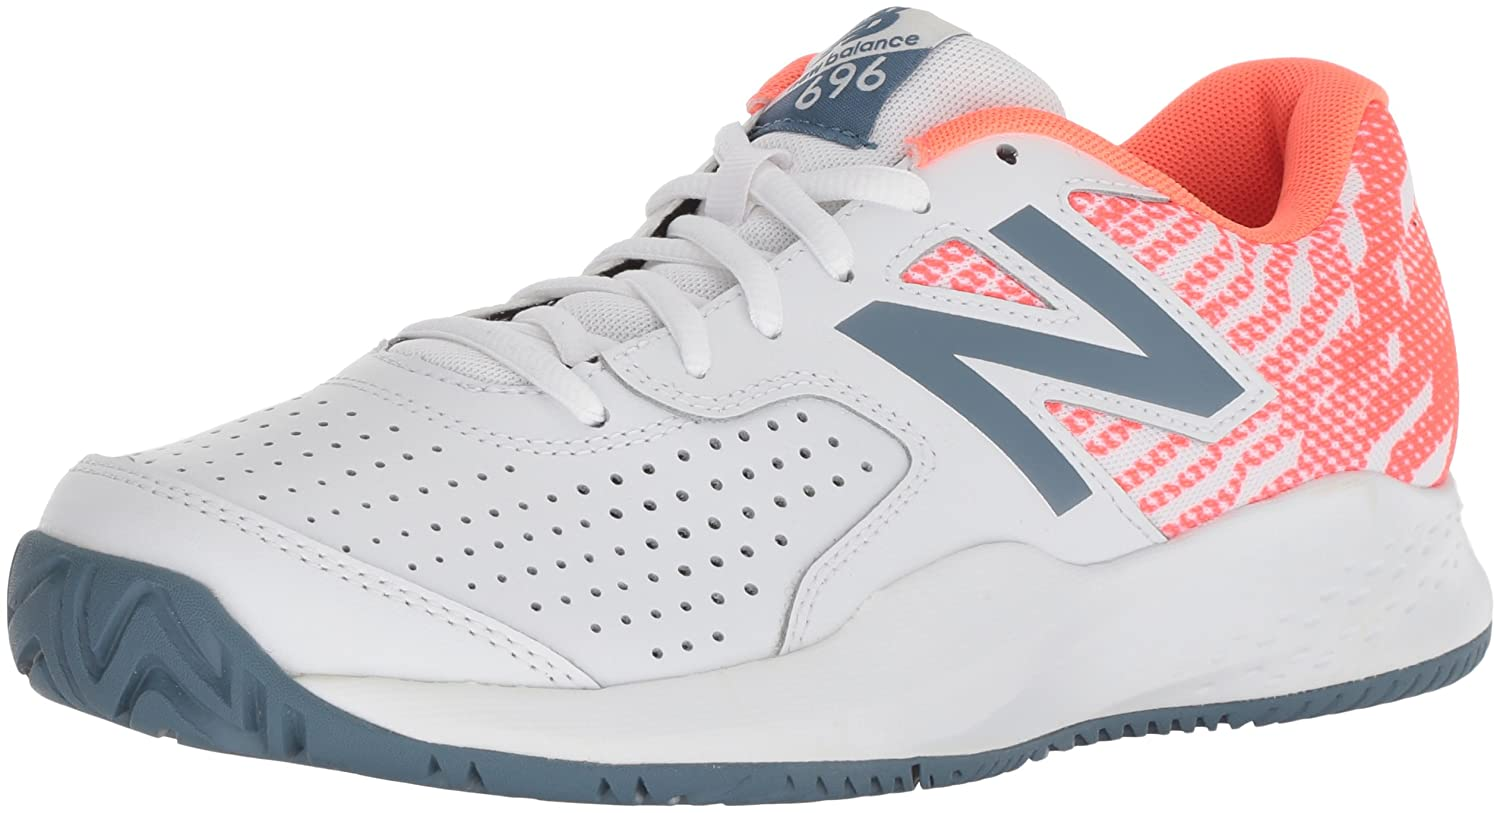 New Balance Women's 696v3 Hard Court Tennis Shoe B075R3M49L 11 B(M) US|White